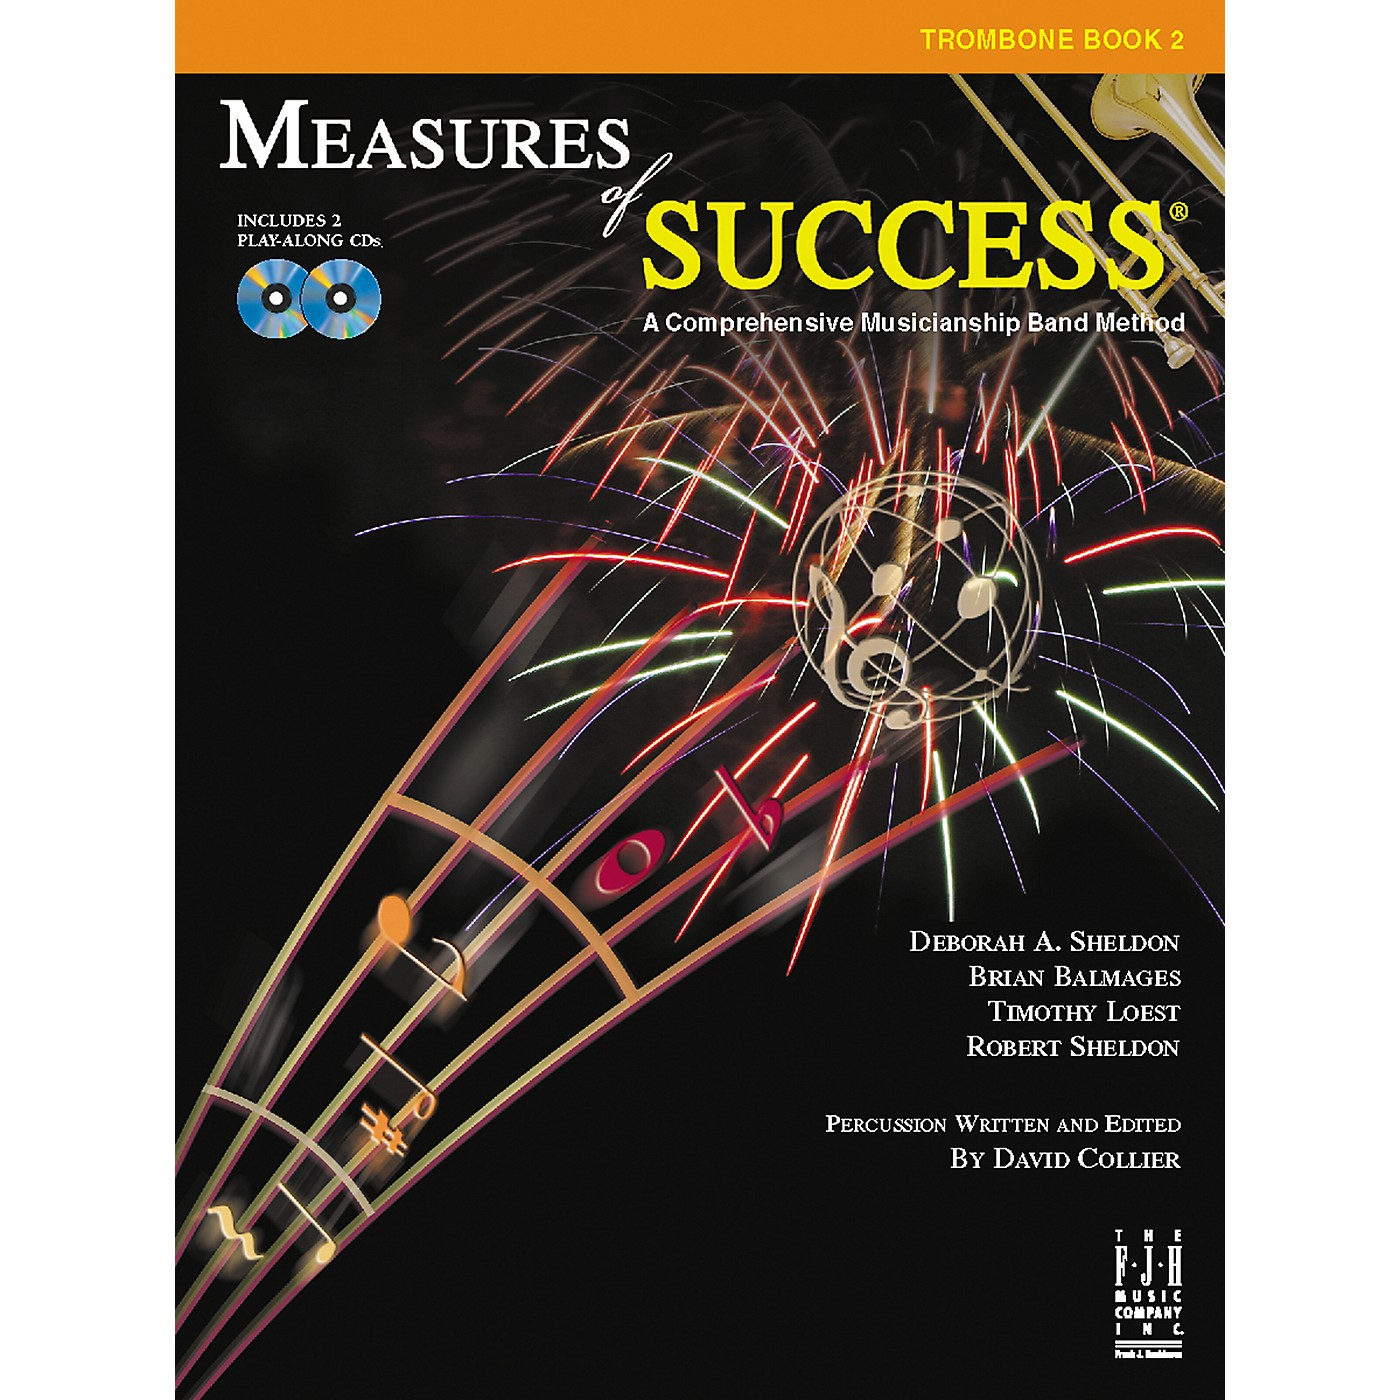 FJH Music Measures of Success Trombone Book 2 thumbnail